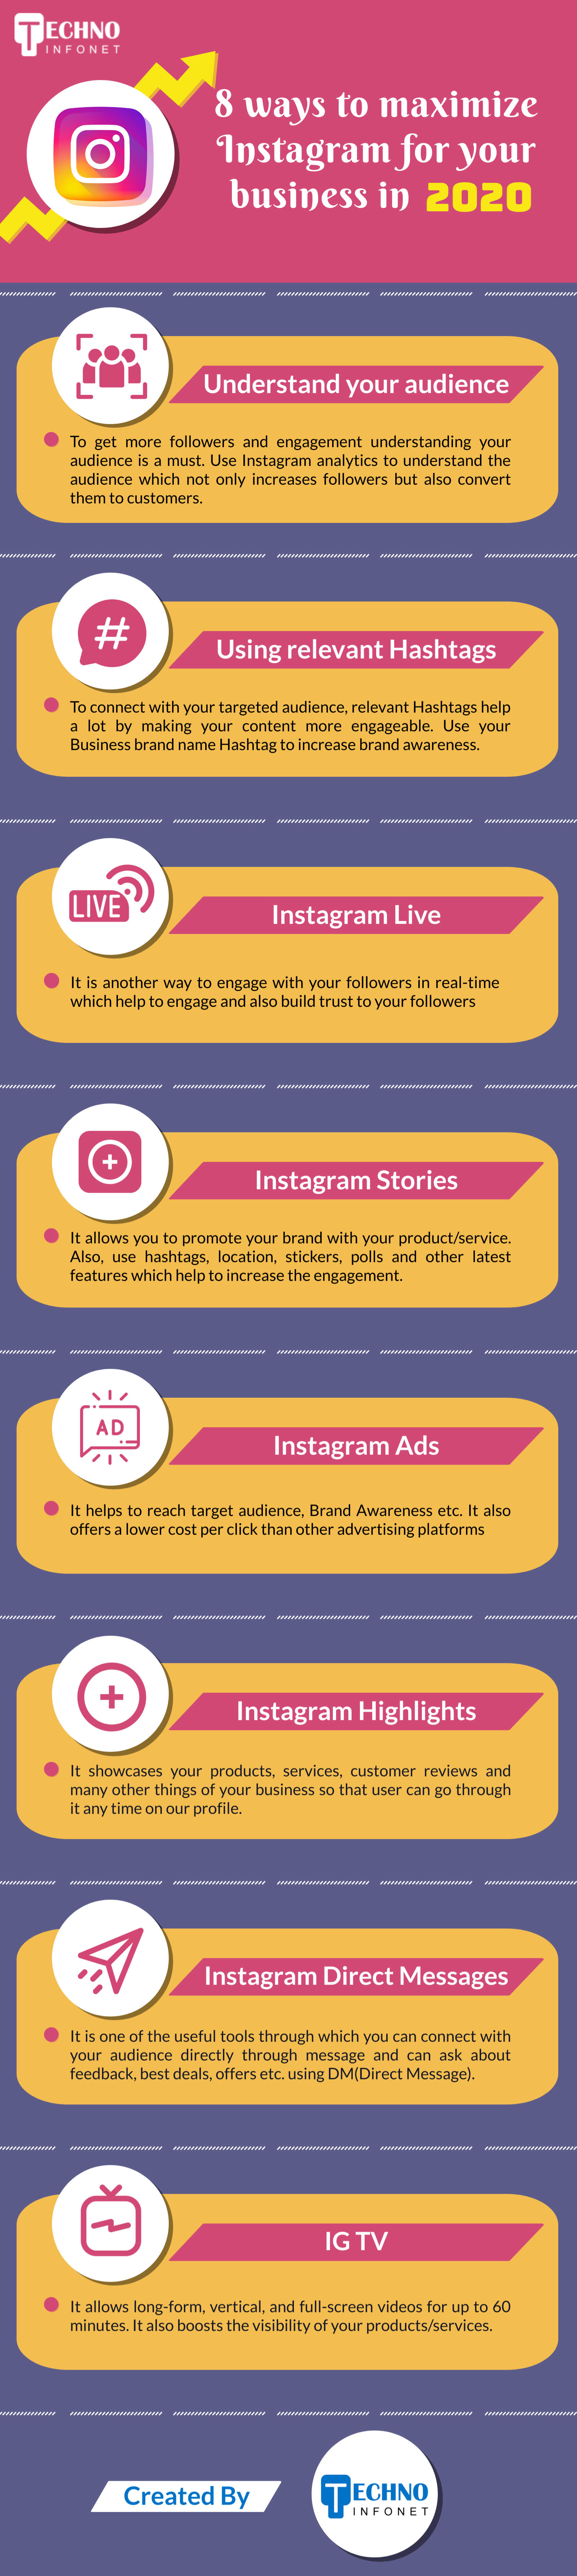 8 ways to maximize Instagram for your business in 2020